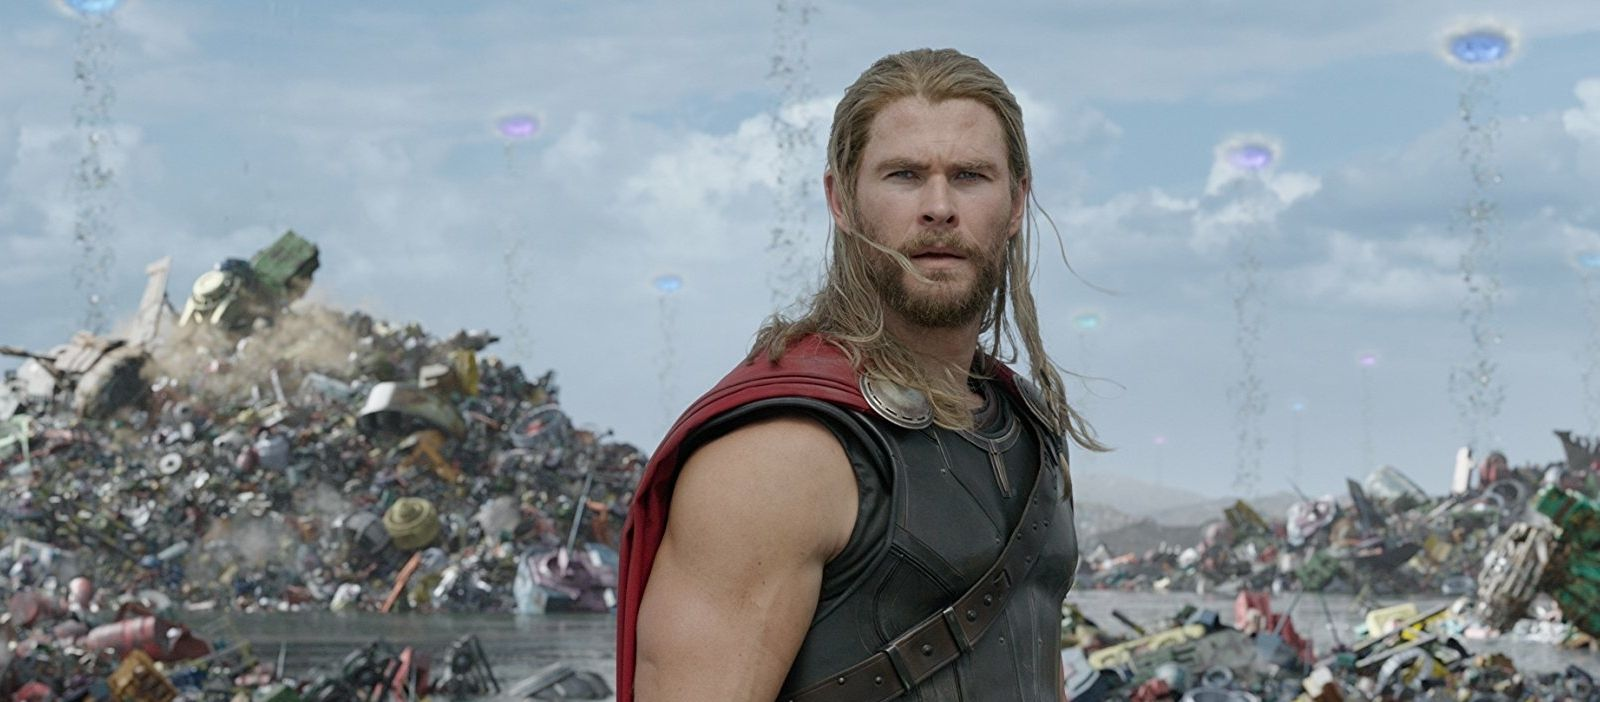 Marvel's new Thor 4 pic with muscle-bound Chris Hemsworth for the end of the shoot